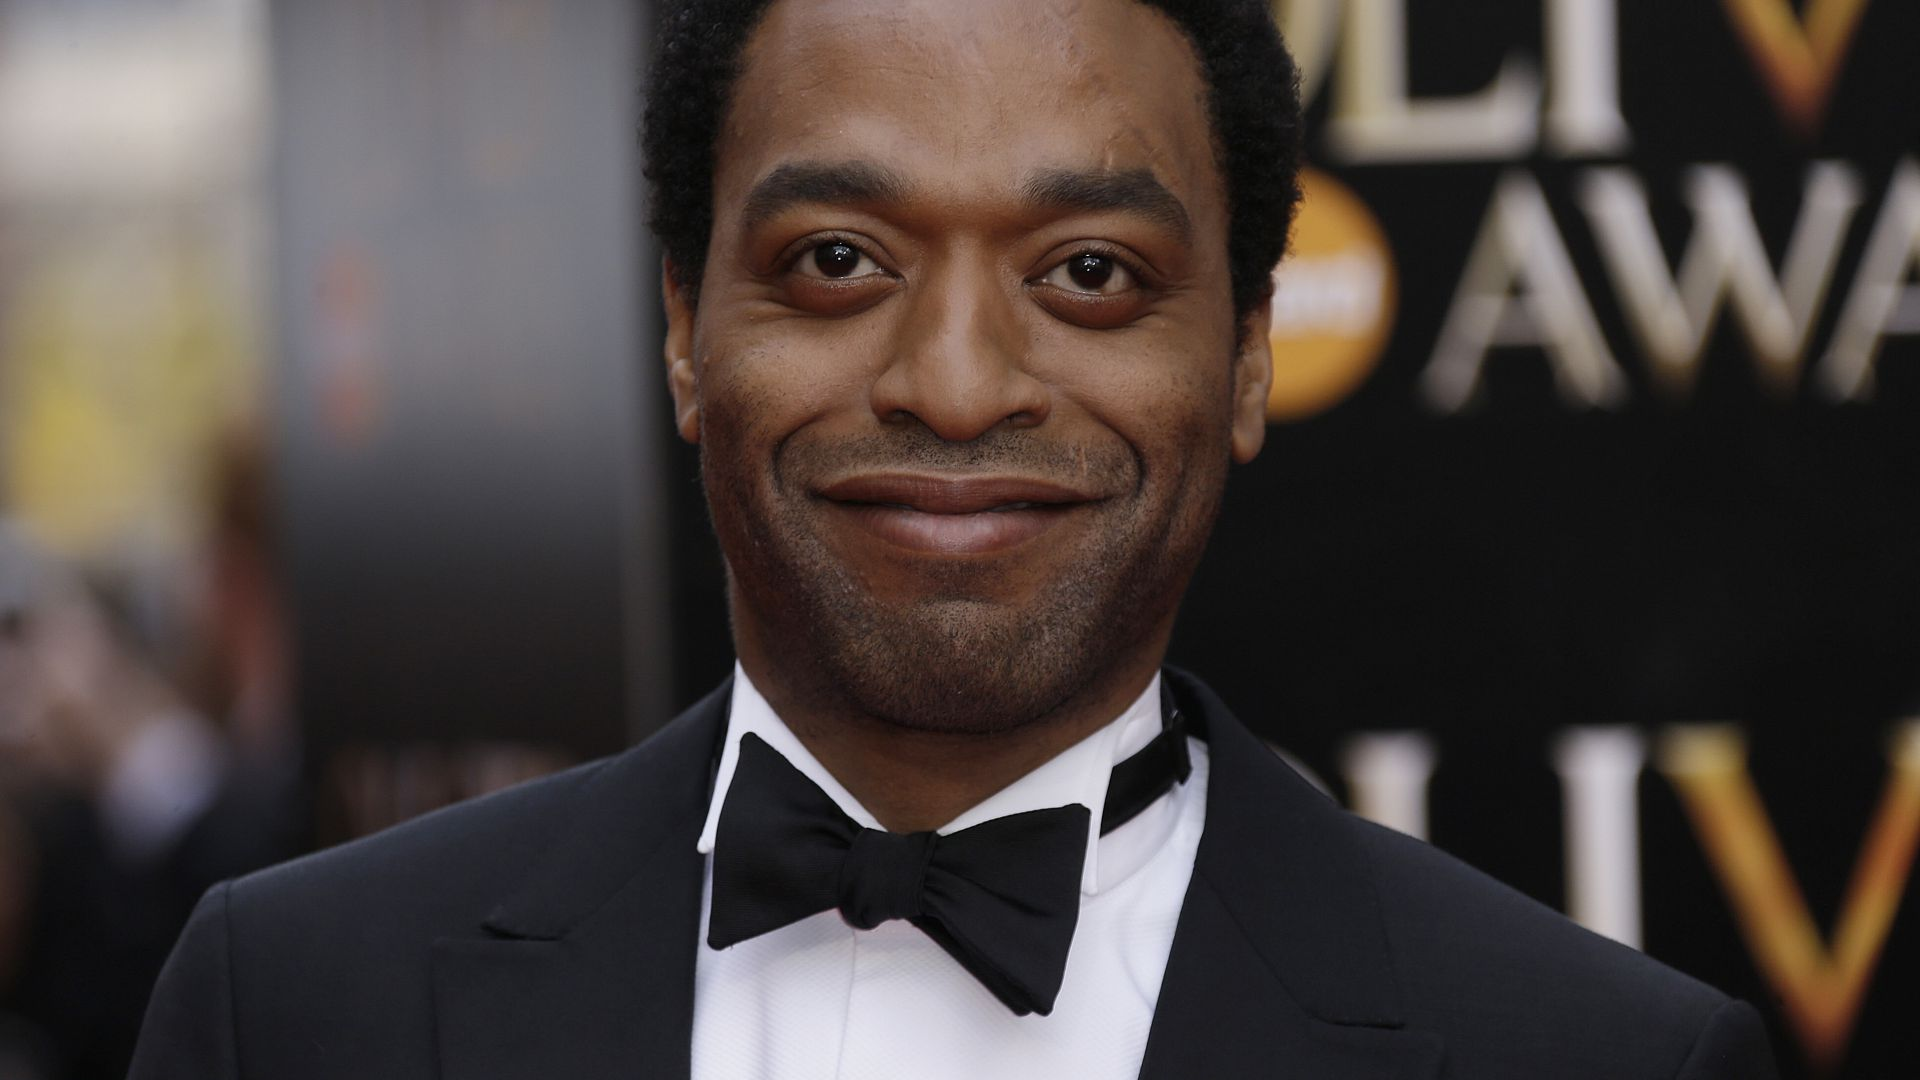 Chiwetel Ejiofor, Most Popular Celebs, actor (horizontal)